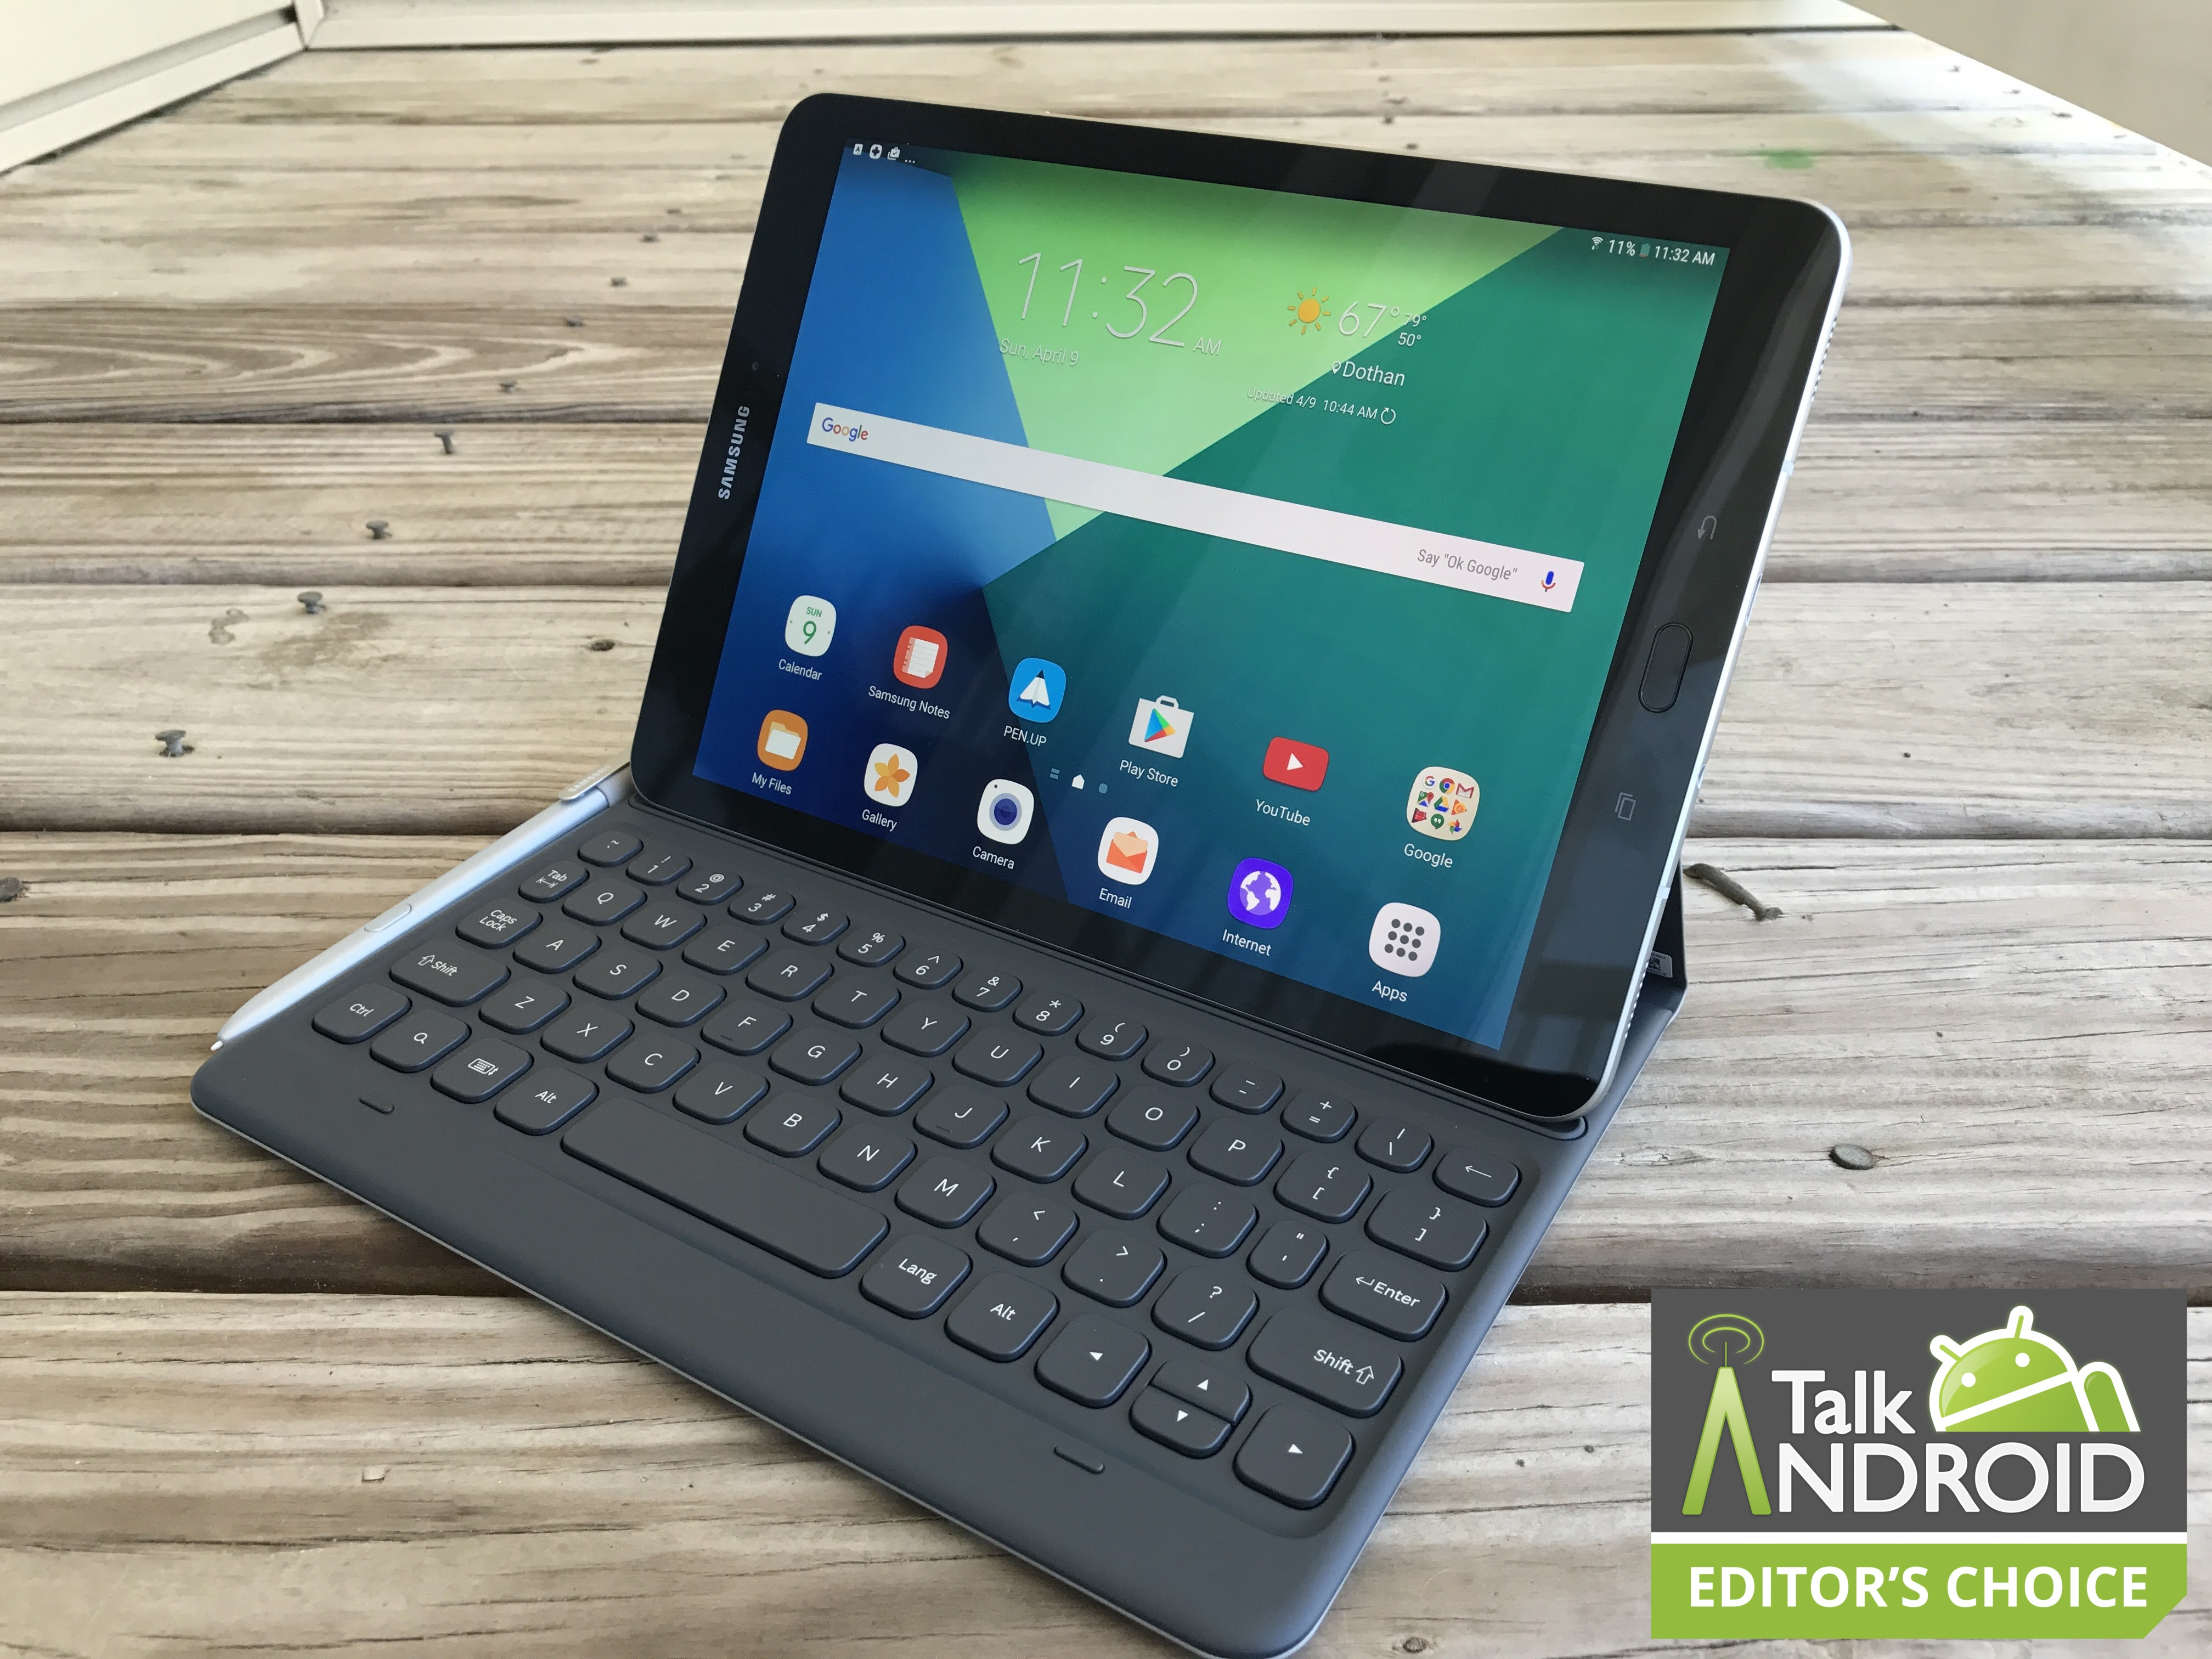 samsung galaxy tab s3 review android s expensive ipad killer. Black Bedroom Furniture Sets. Home Design Ideas